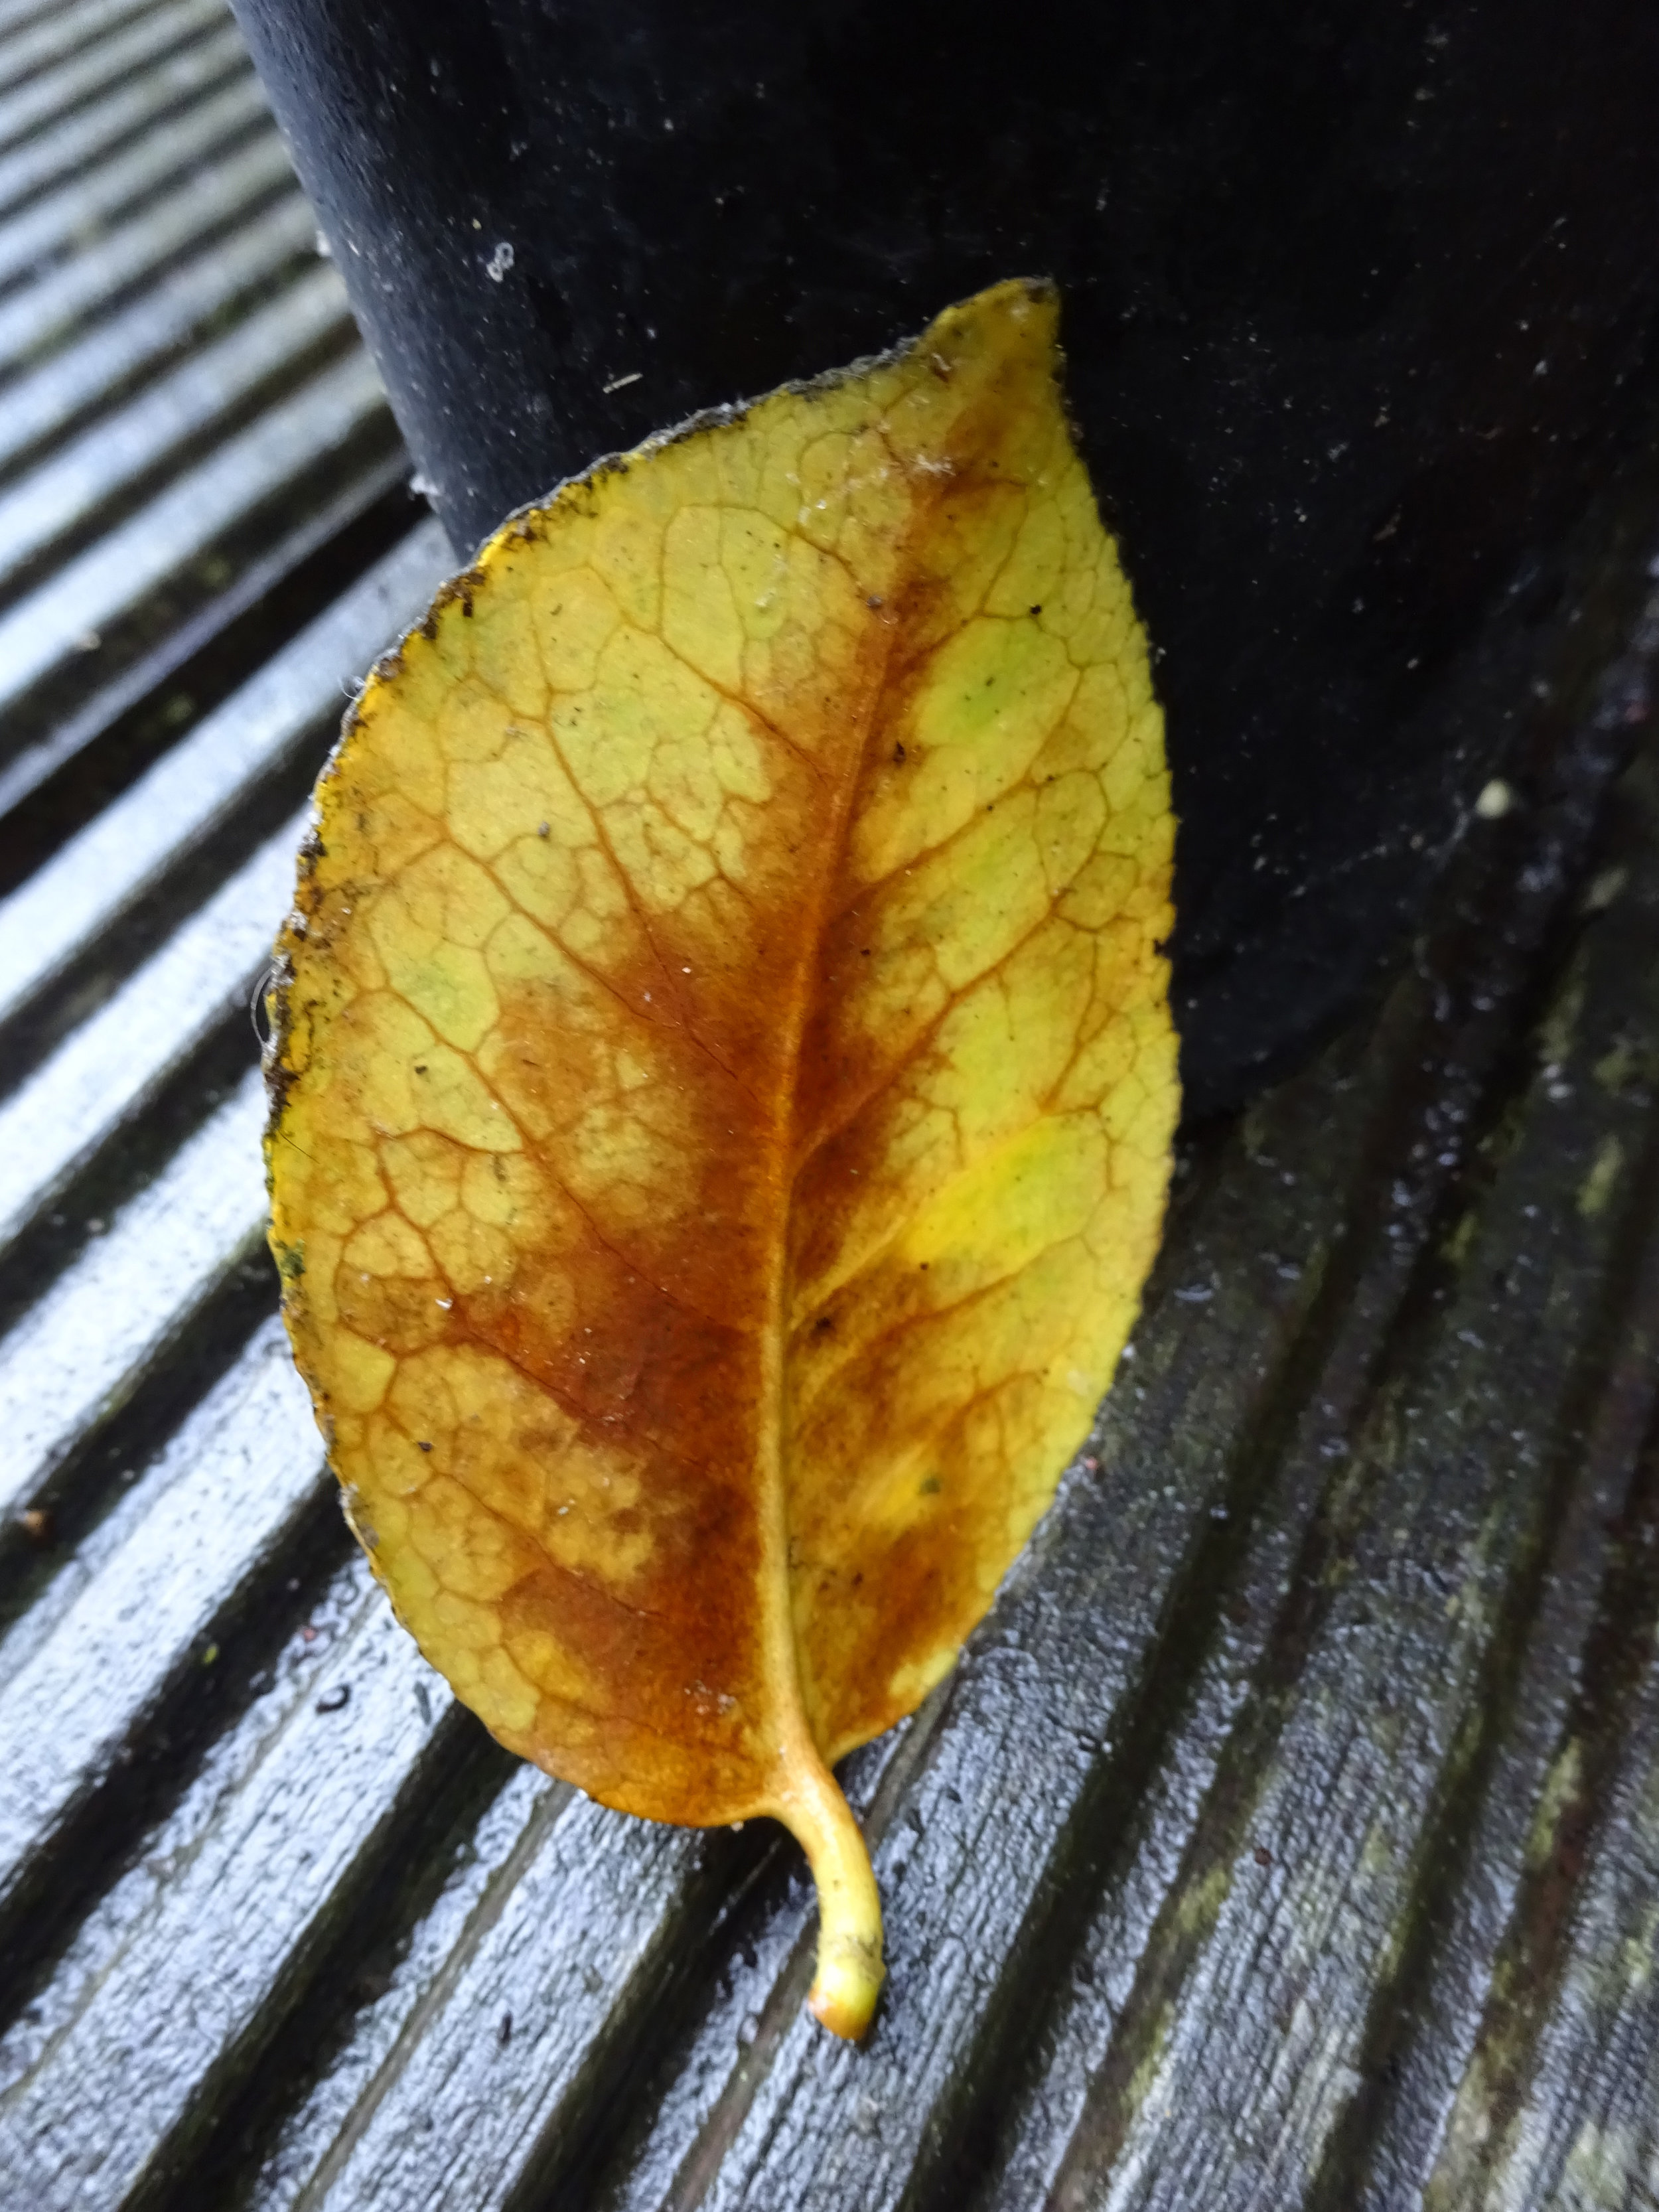 I took this photo with my Camera rather than my phone. I should do this more often as it looks a lot better. The contrast of light and dark between the yellow leaf and decking is quite stunning.